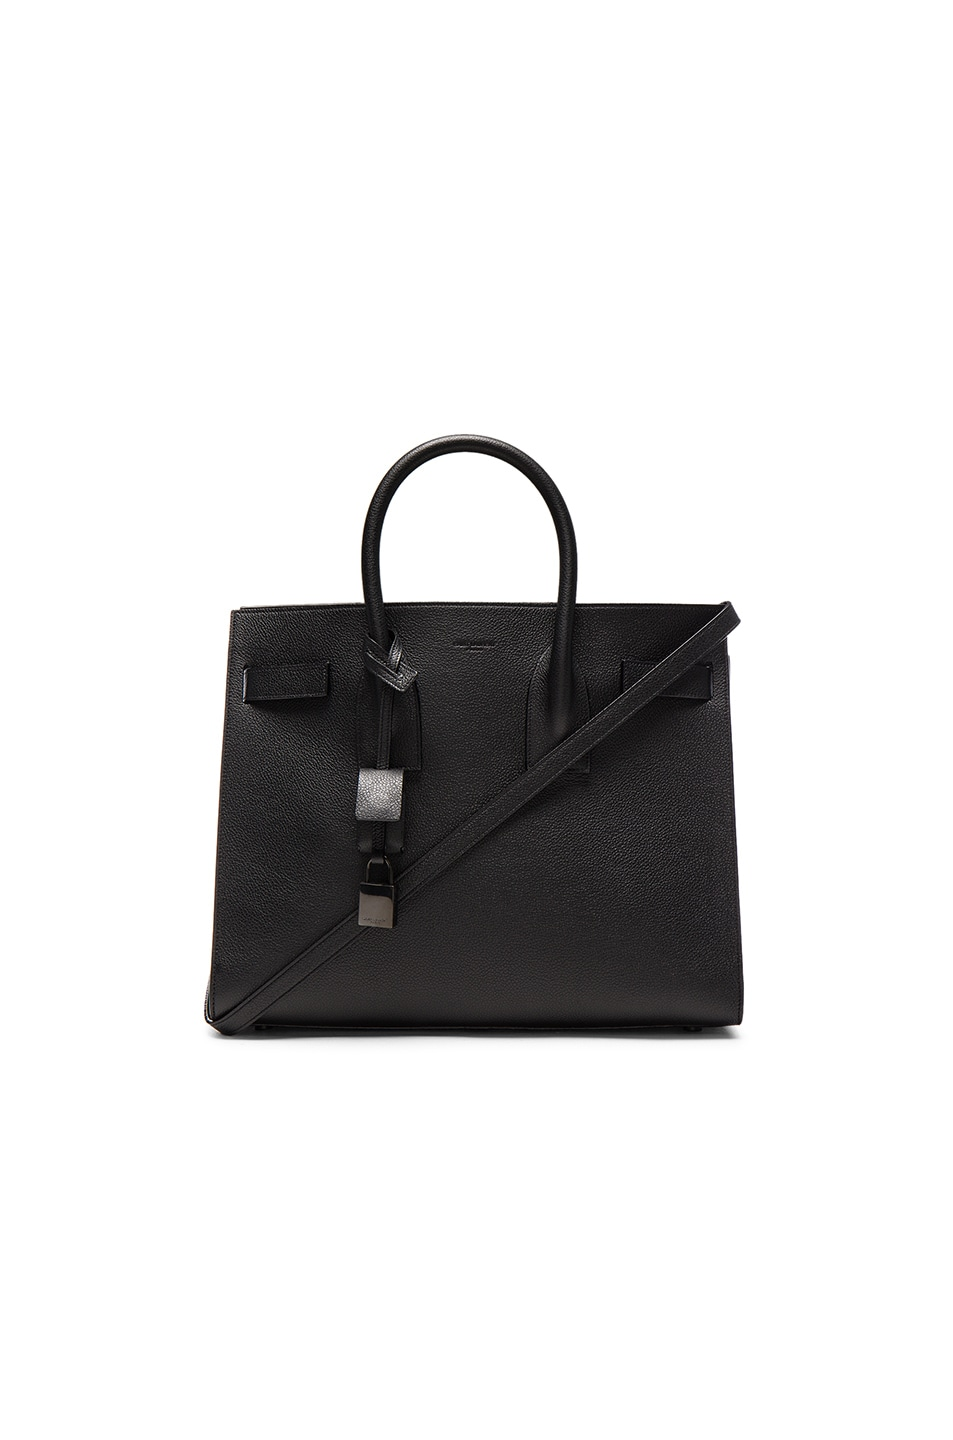 Image 1 of Saint Laurent Small Sac de Jour Bonded Shiny Trim in Black